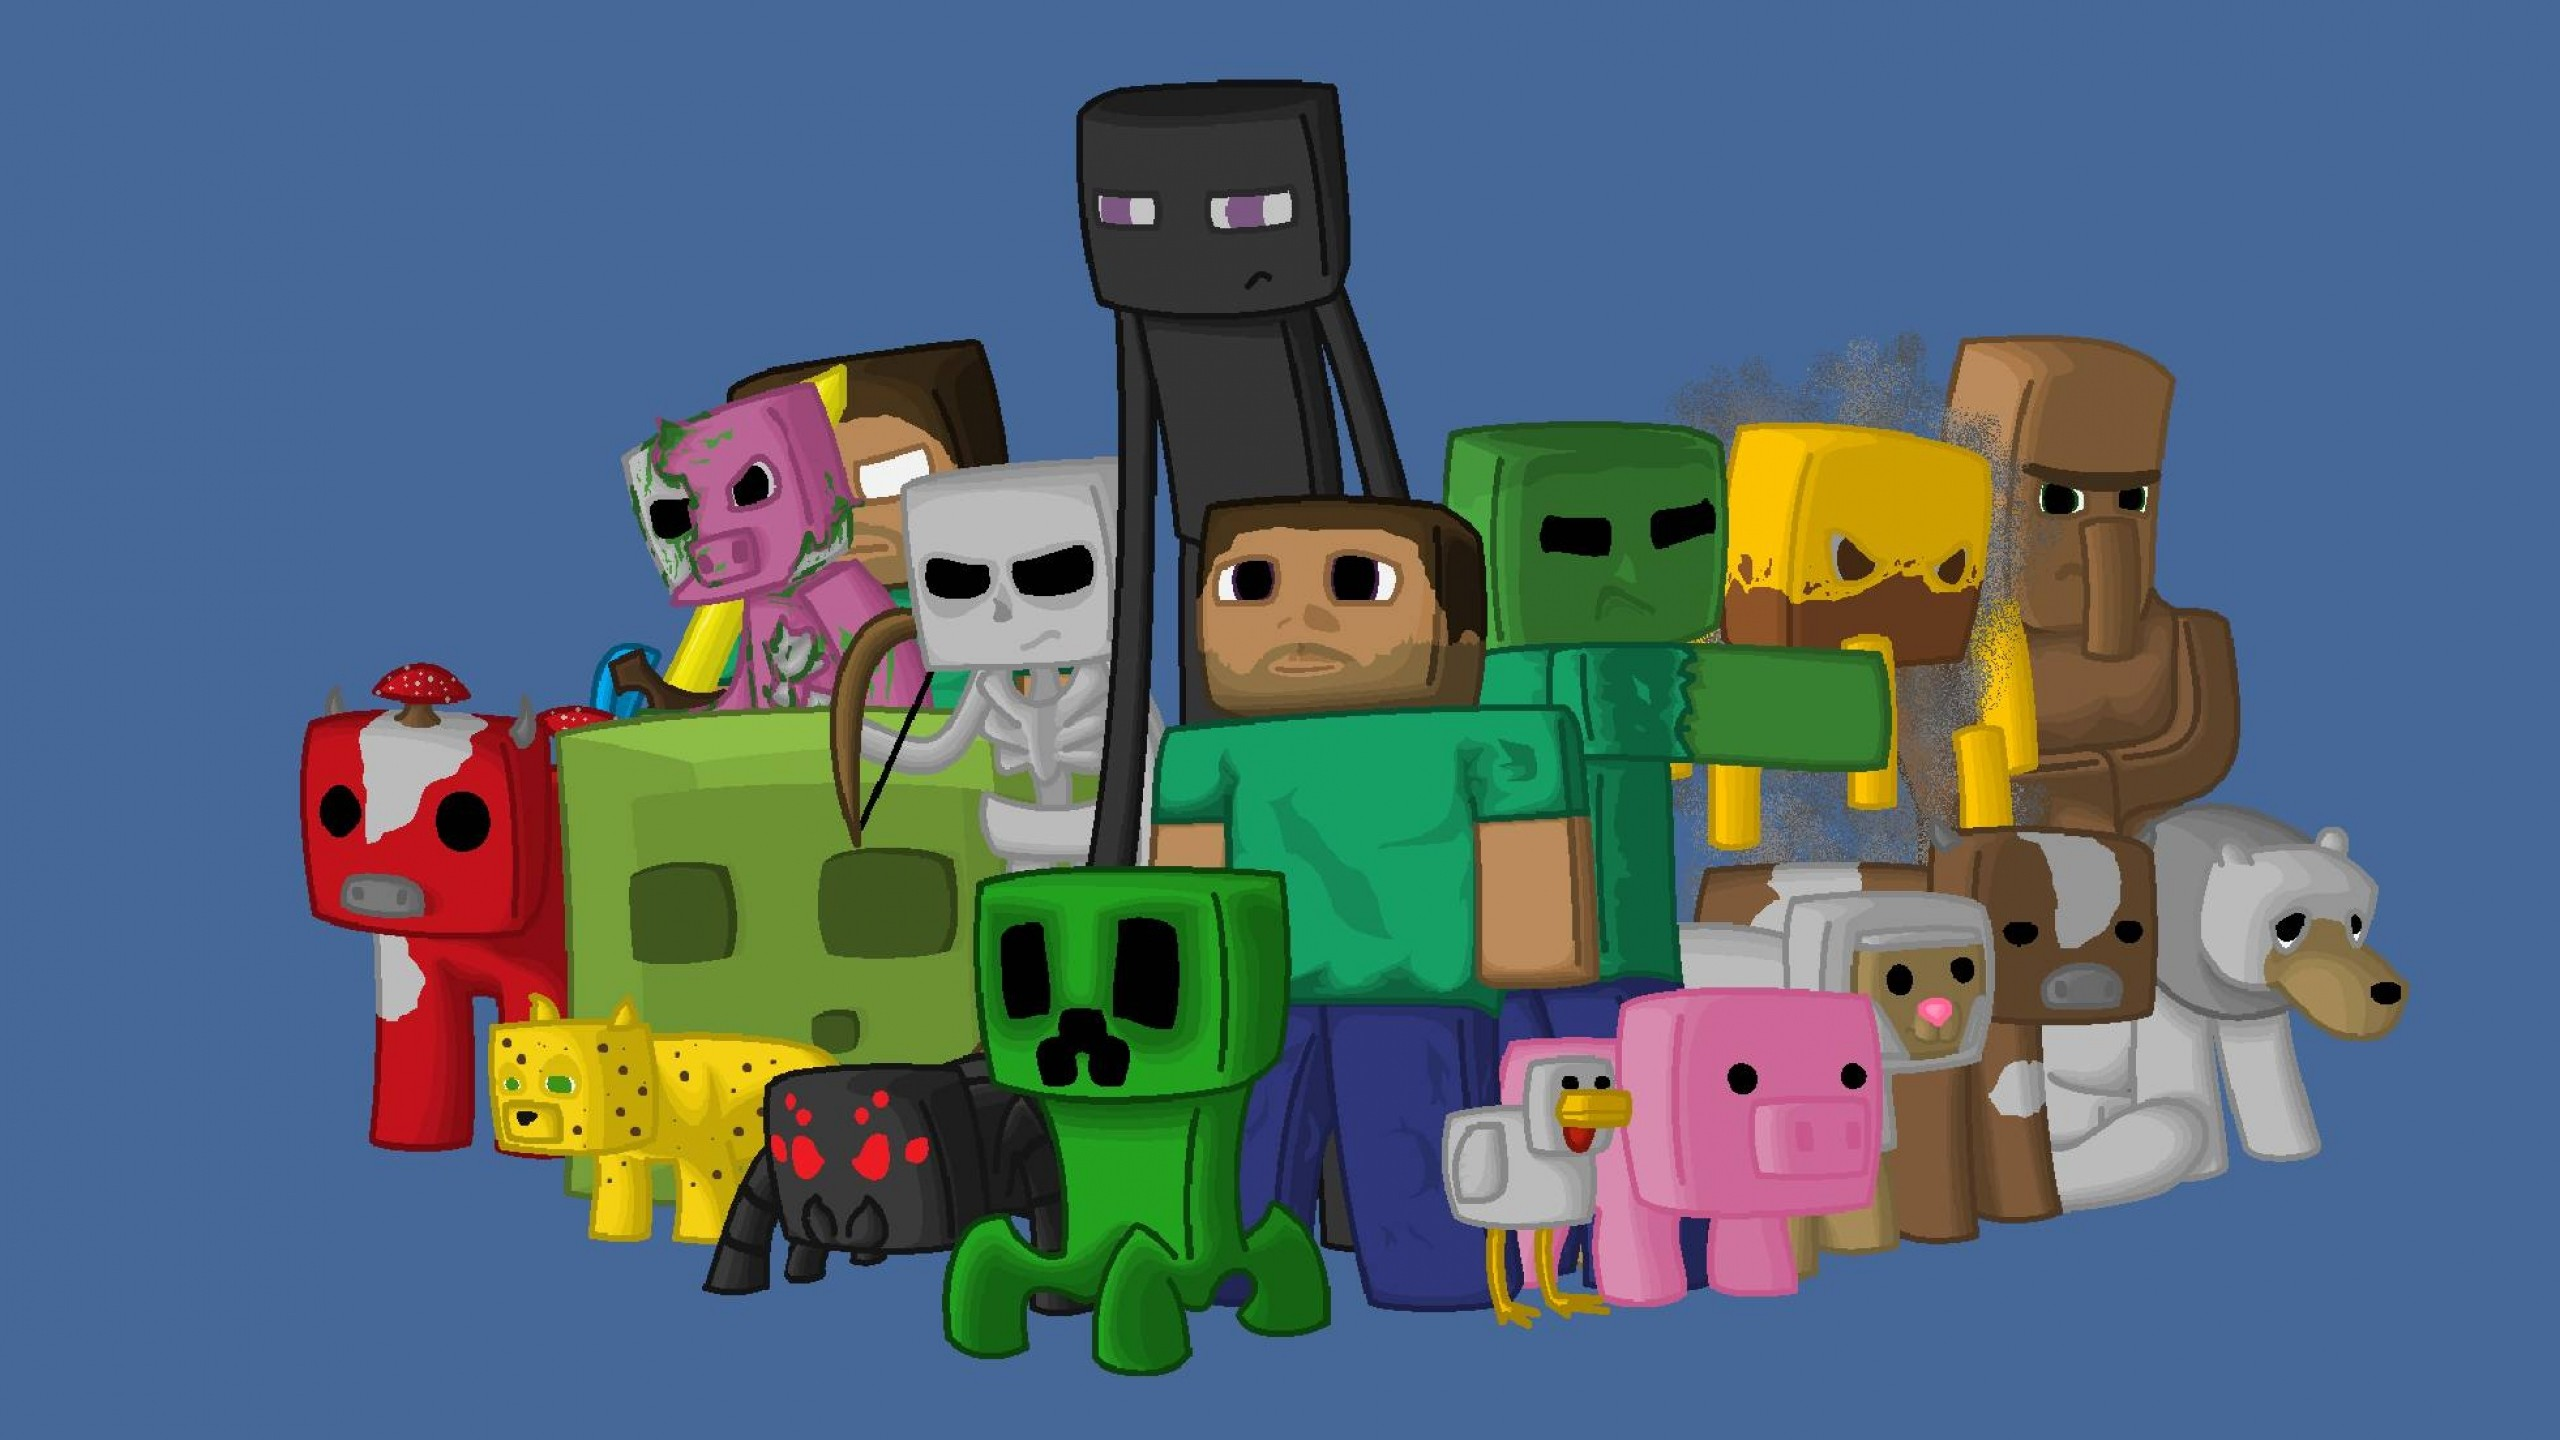 2560x1440  Wallpaper minecraft, characters, game, pixels, java